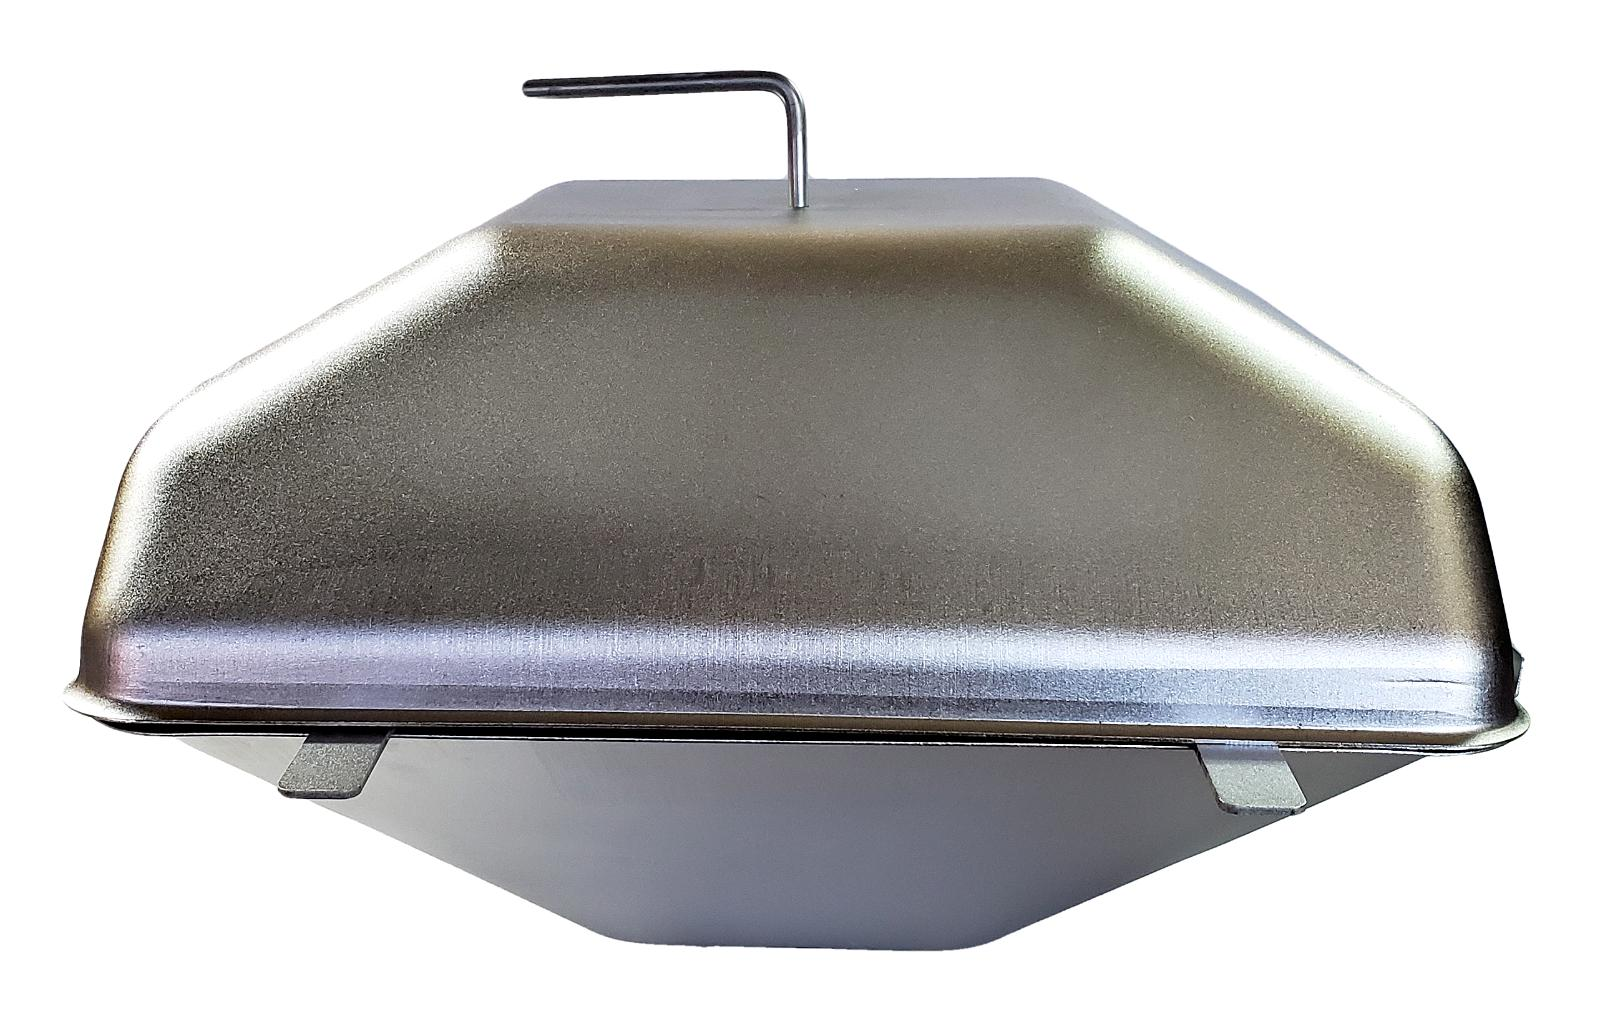 GMG, Oven Daniel Boone Bowie BBQ GMG-4023